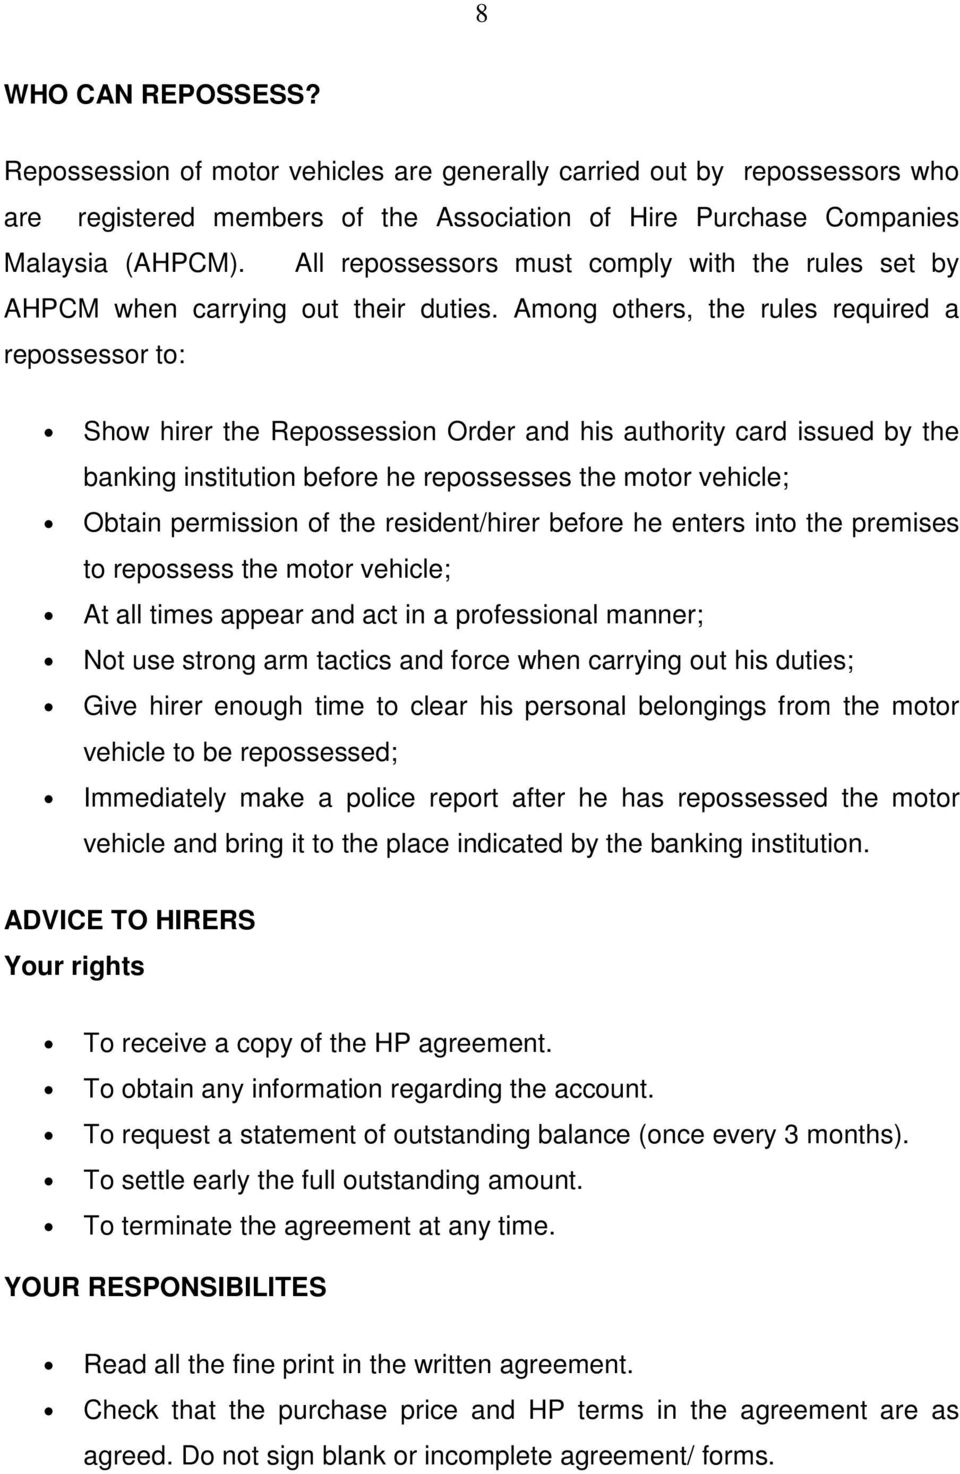 Among others, the rules required a repossessor to: Show hirer the Repossession Order and his authority card issued by the banking institution before he repossesses the motor vehicle; Obtain